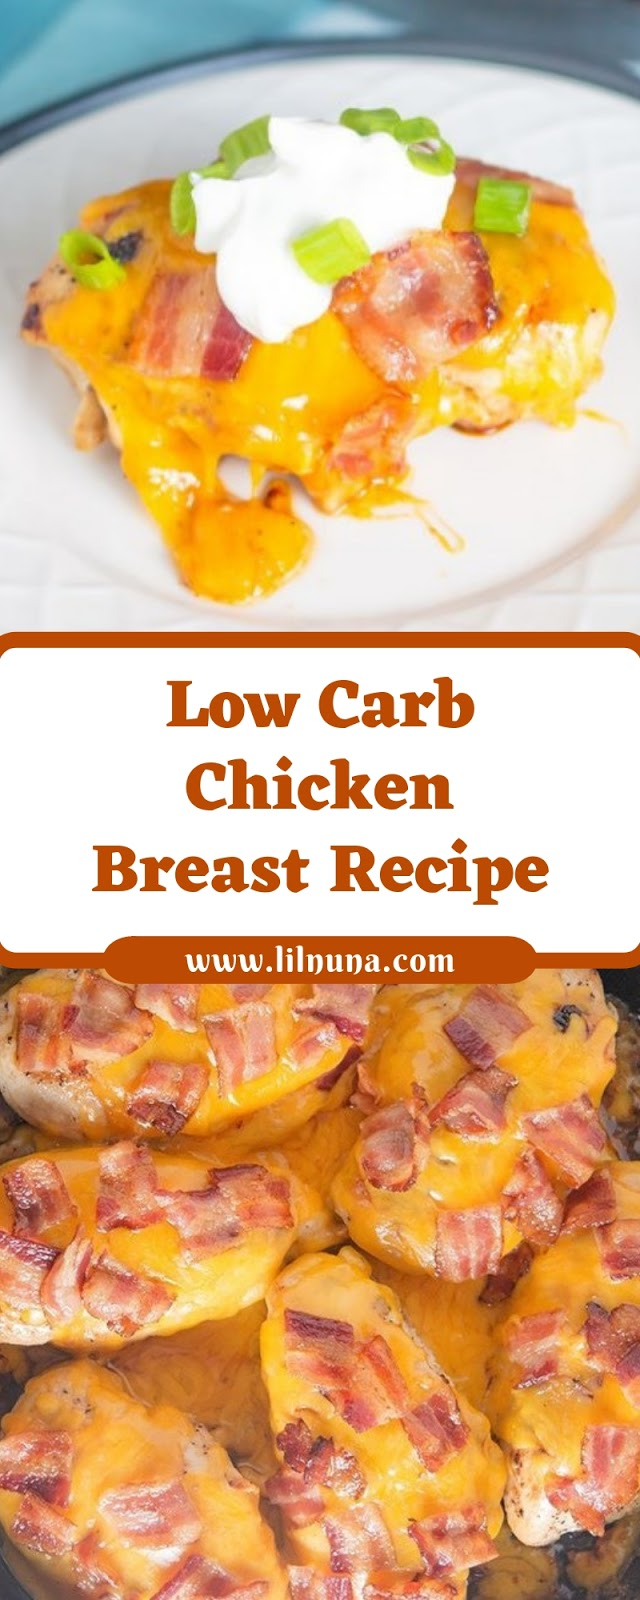 Low Carb Chicken Breast Recipe